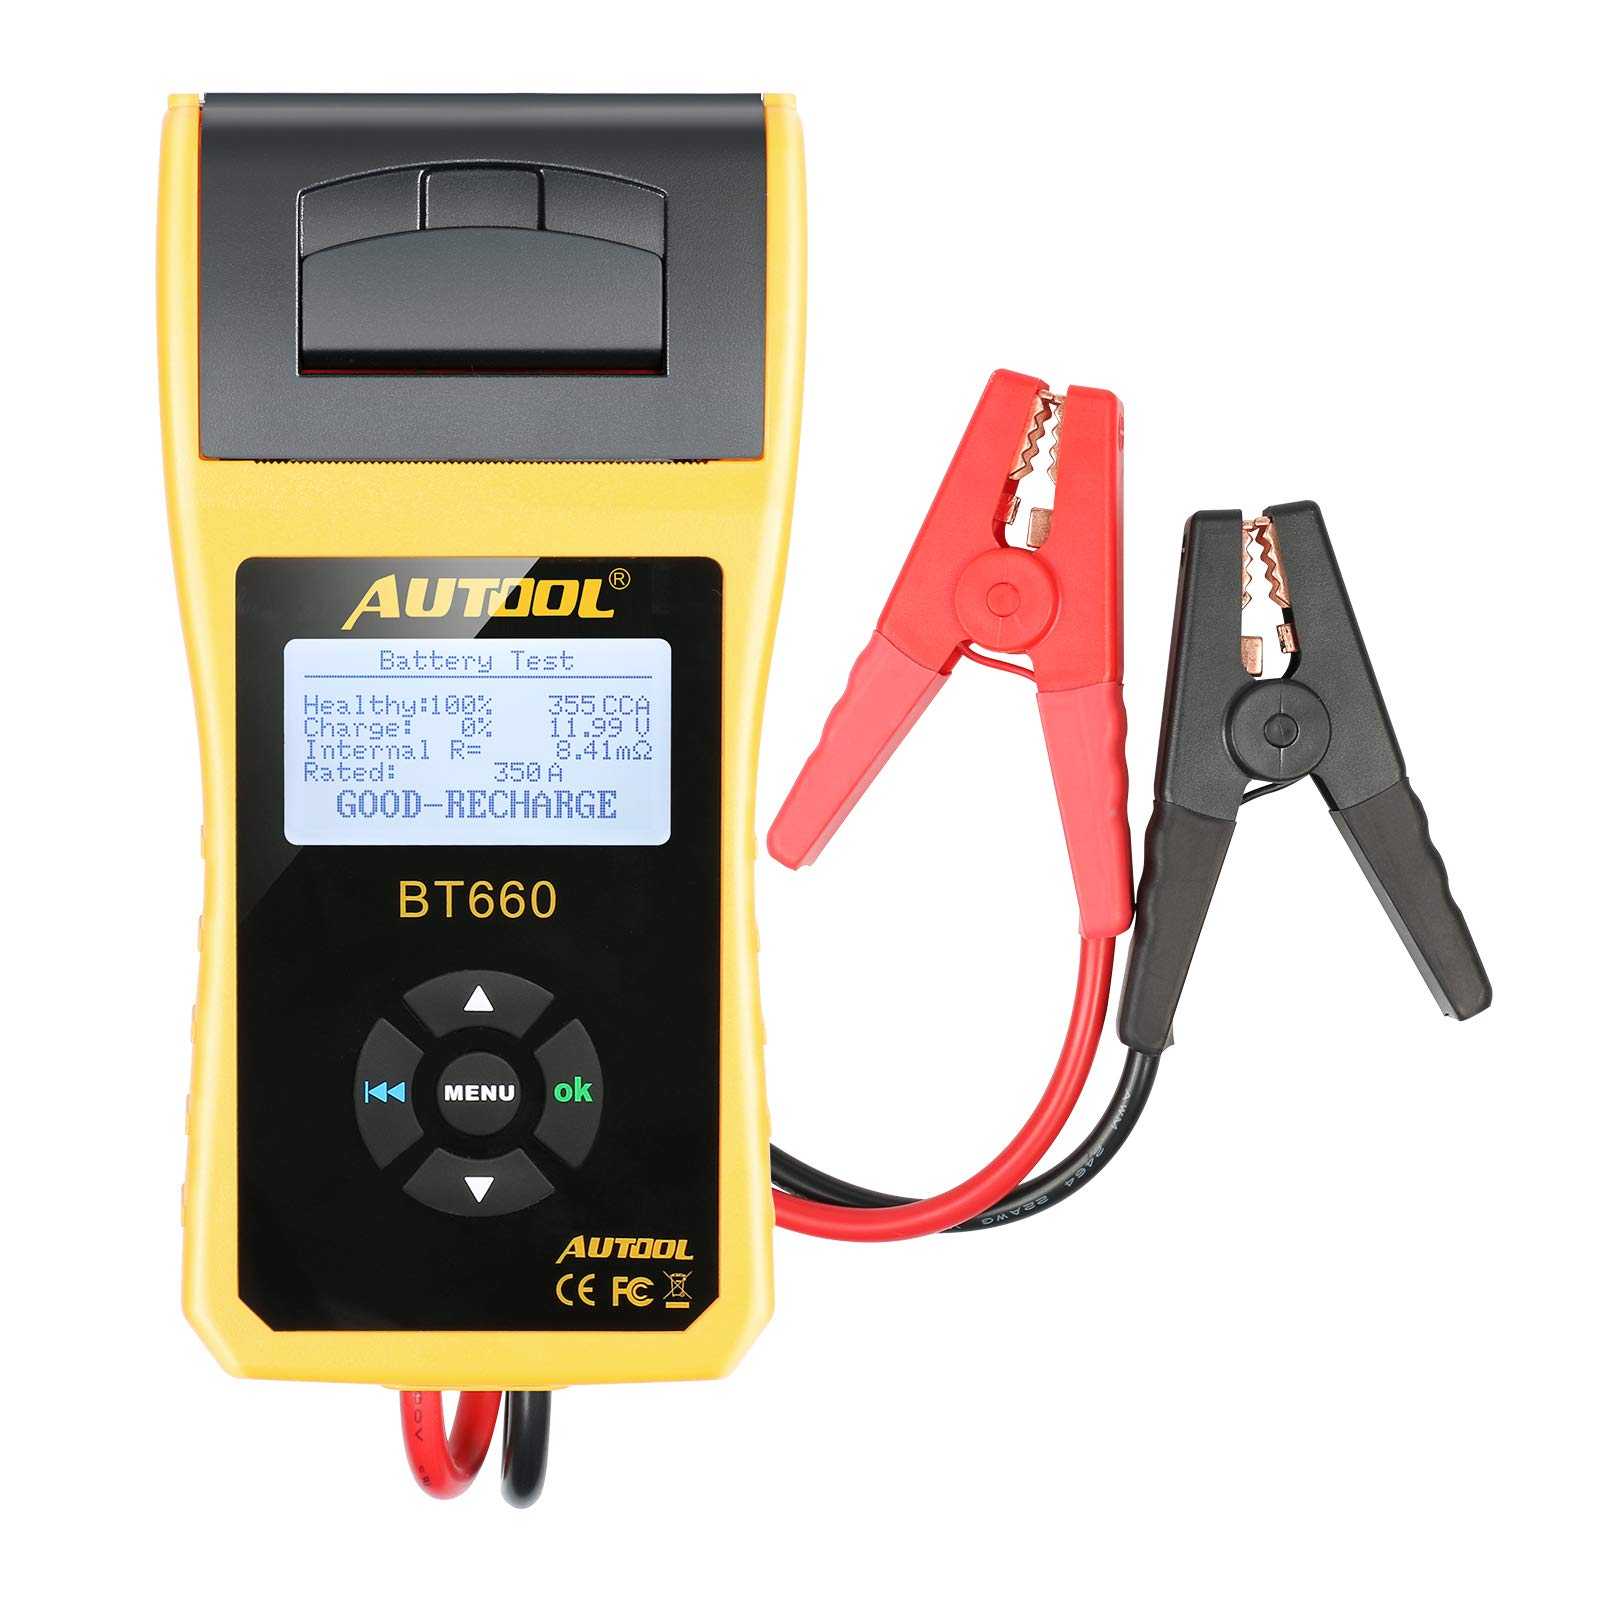 AUTOOL BT660 Battery Conductance Tester 12V/24V BT-660 Auto Battery Testers Automotive Diagnostic Tools for Heavy Duty Trucks, Light Duty Truck, Cars by AUTOOL (Image #3)